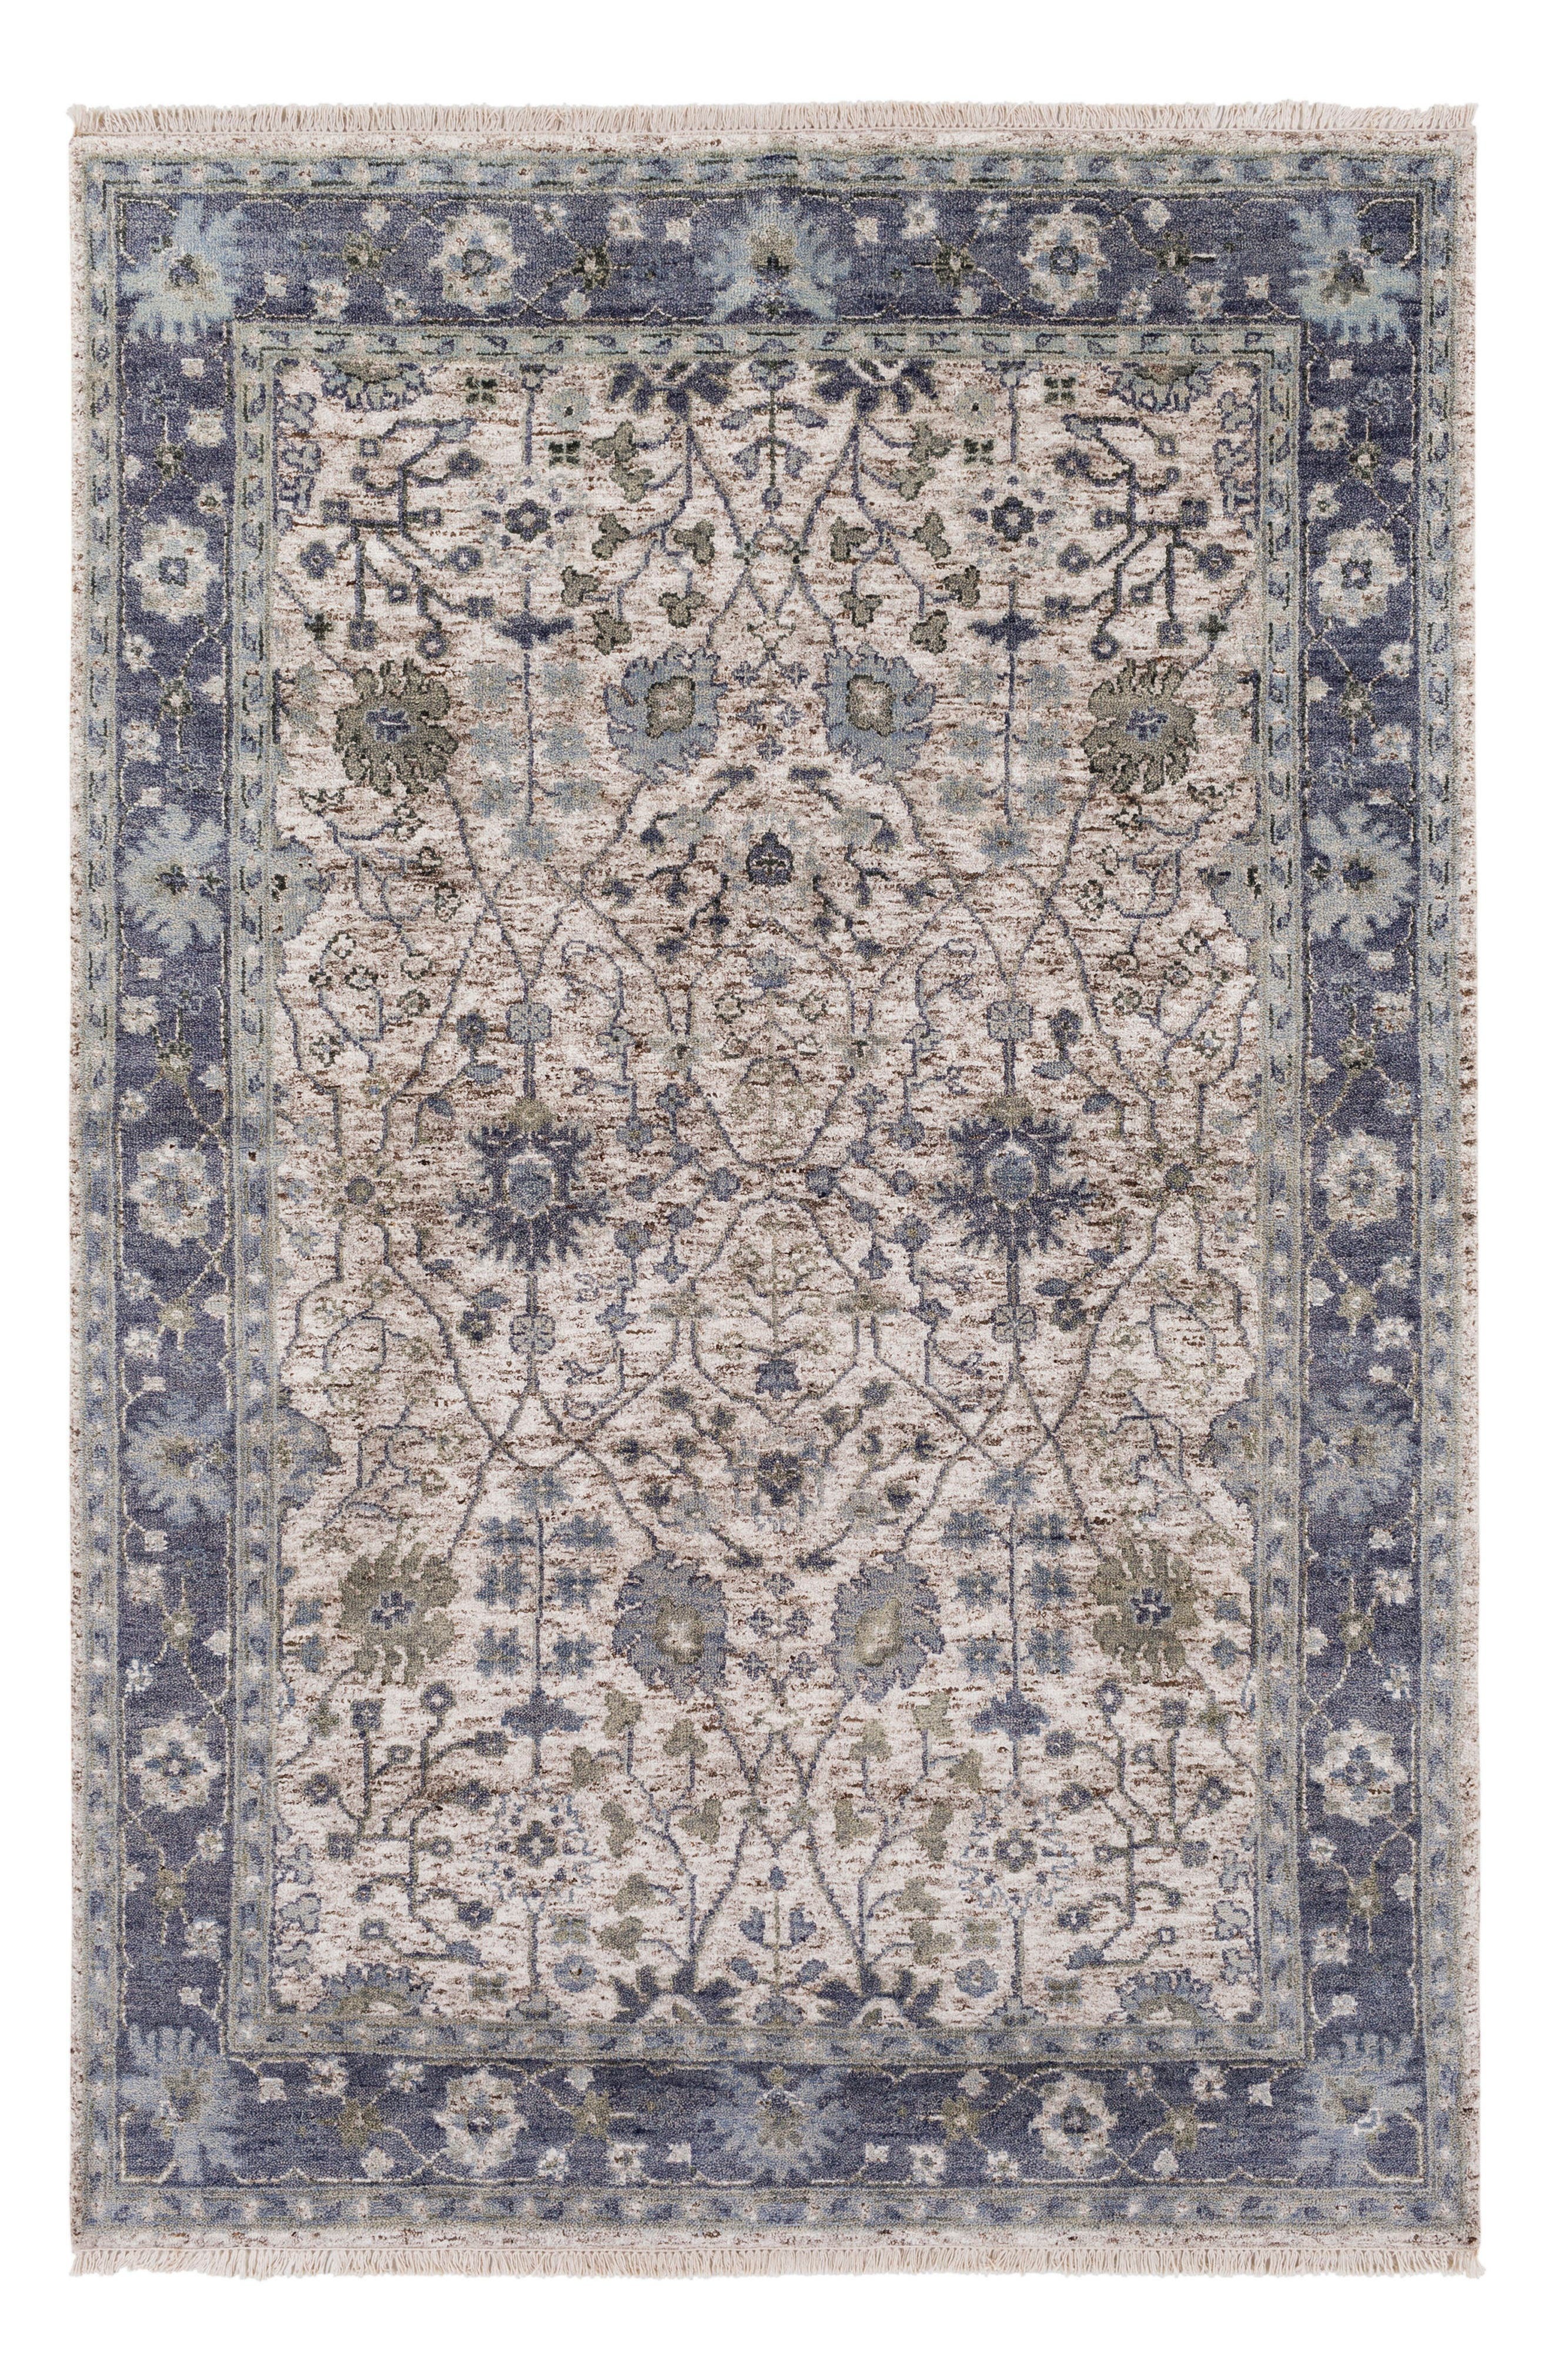 Maeva Classic Hand Knotted Rug,                             Main thumbnail 1, color,                             400